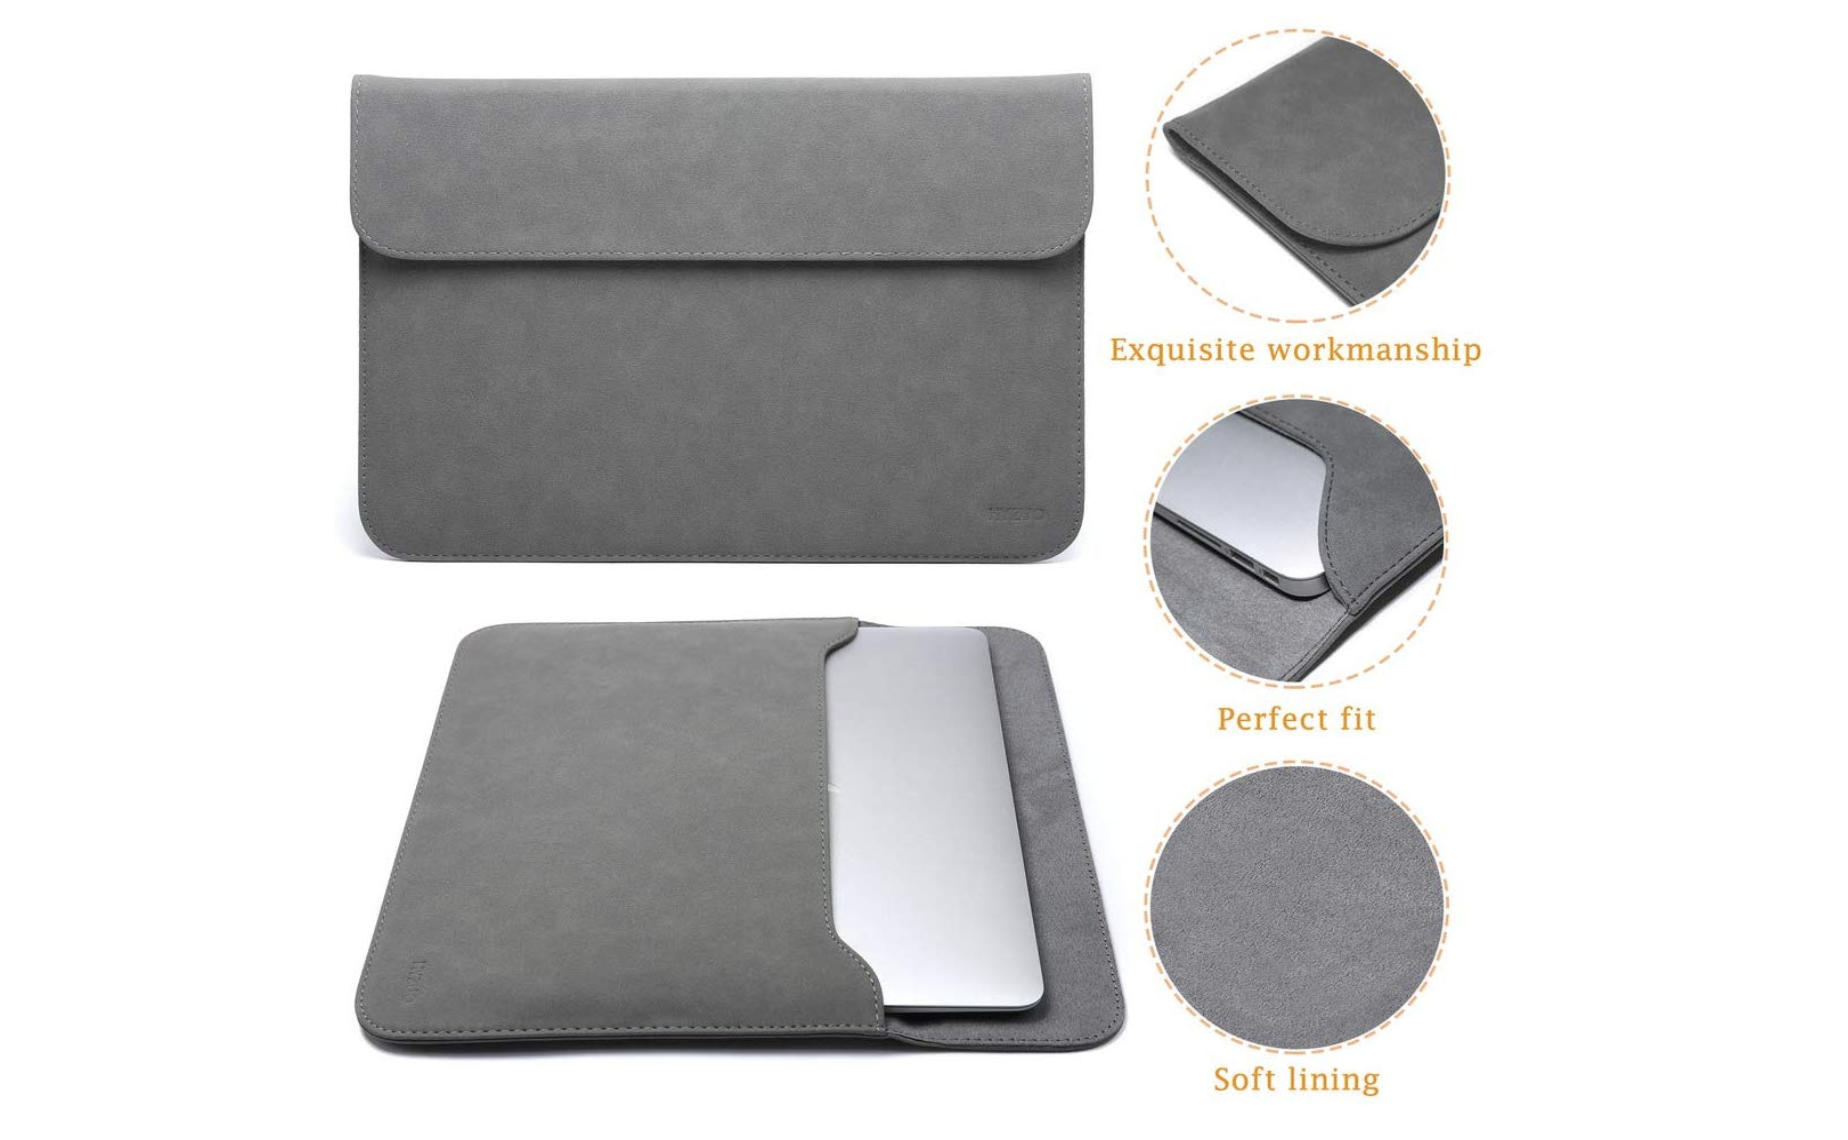 Top 10 Best Portable Laptop Sleeves of 2020 Review